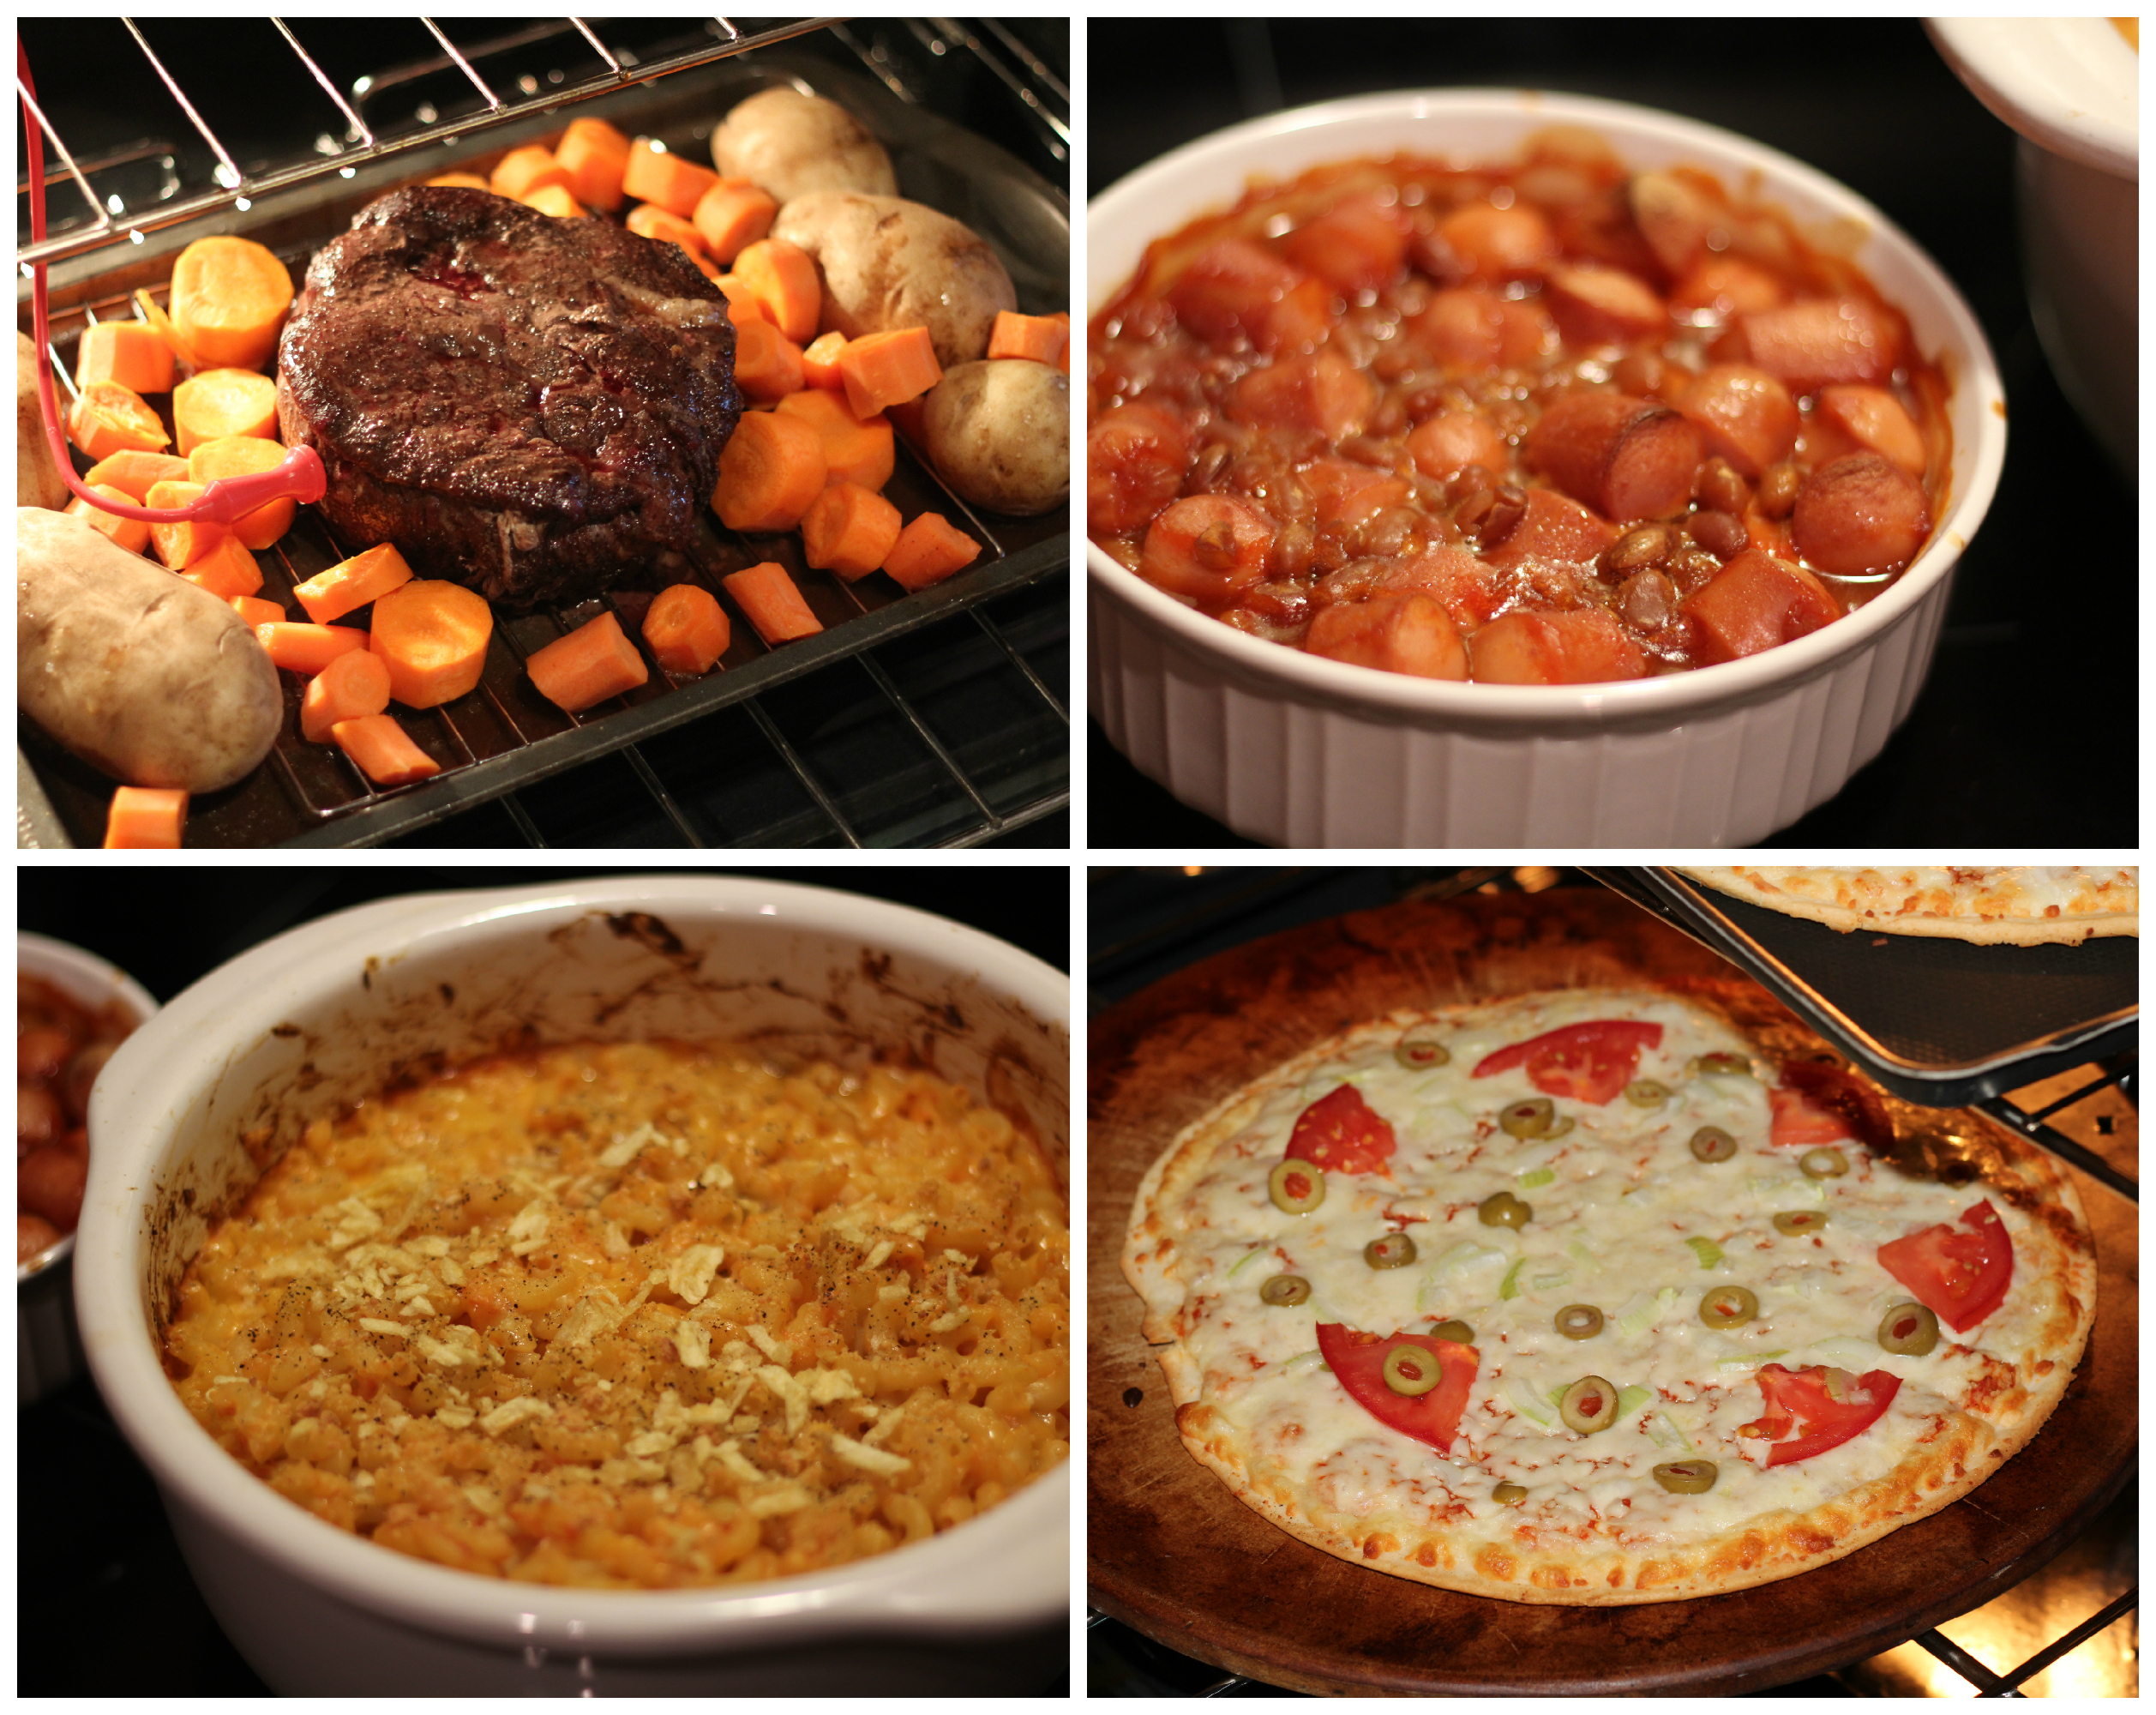 Cold weather and comfort foods #testdrivemoms